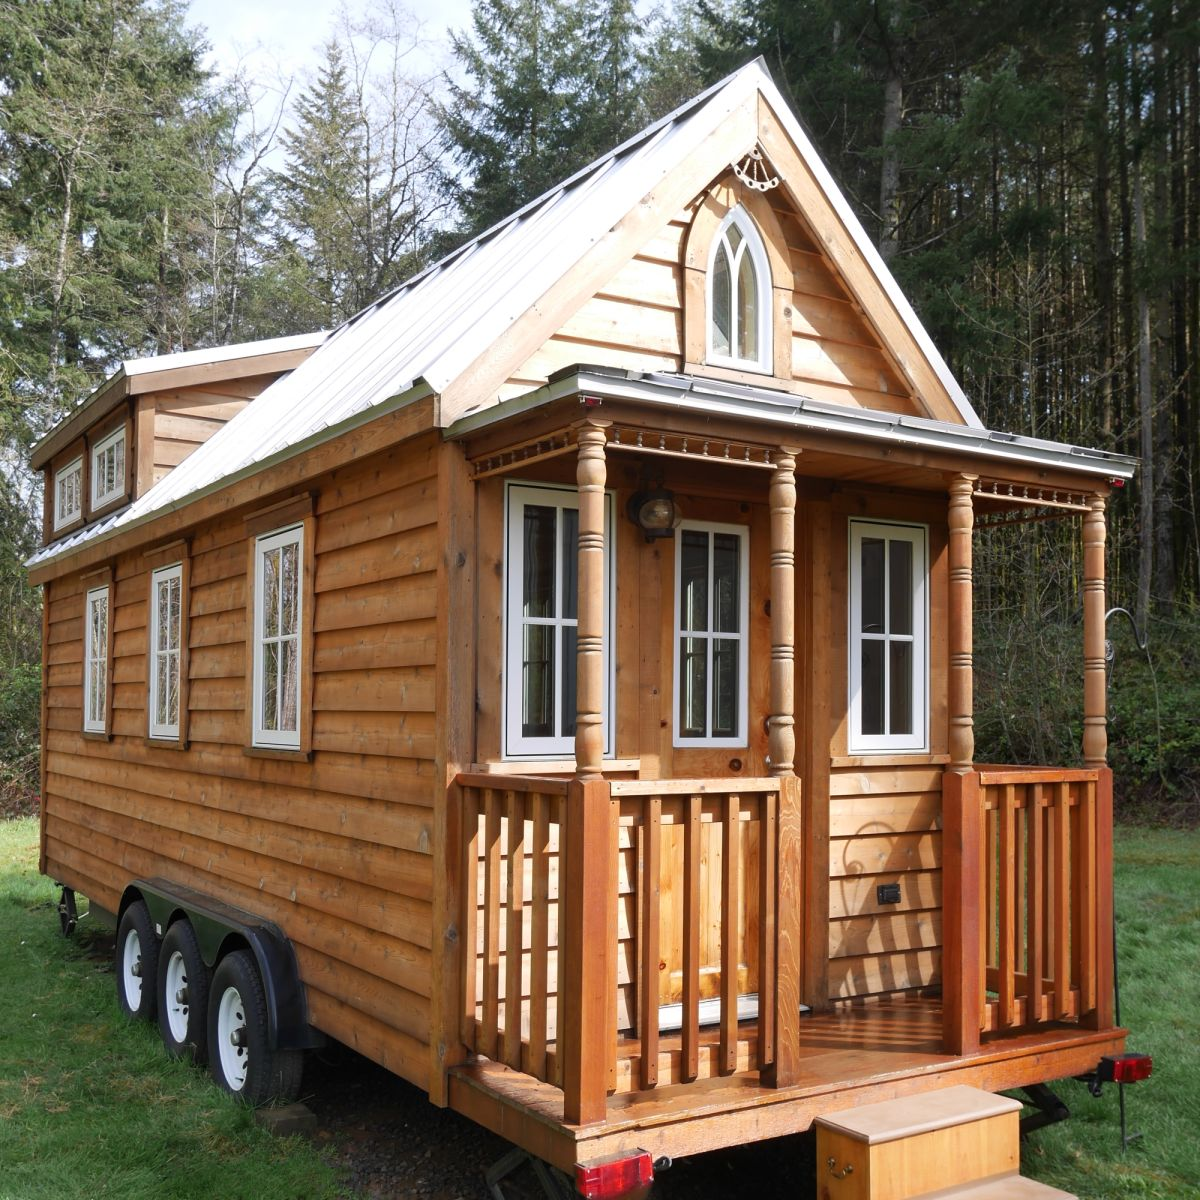 Charming Tumbleweed Tiny House on Wheels with 29 sleeping lofts! - Tiny  House Trailer for Sale in Kelso, Washington - Tiny House Listings